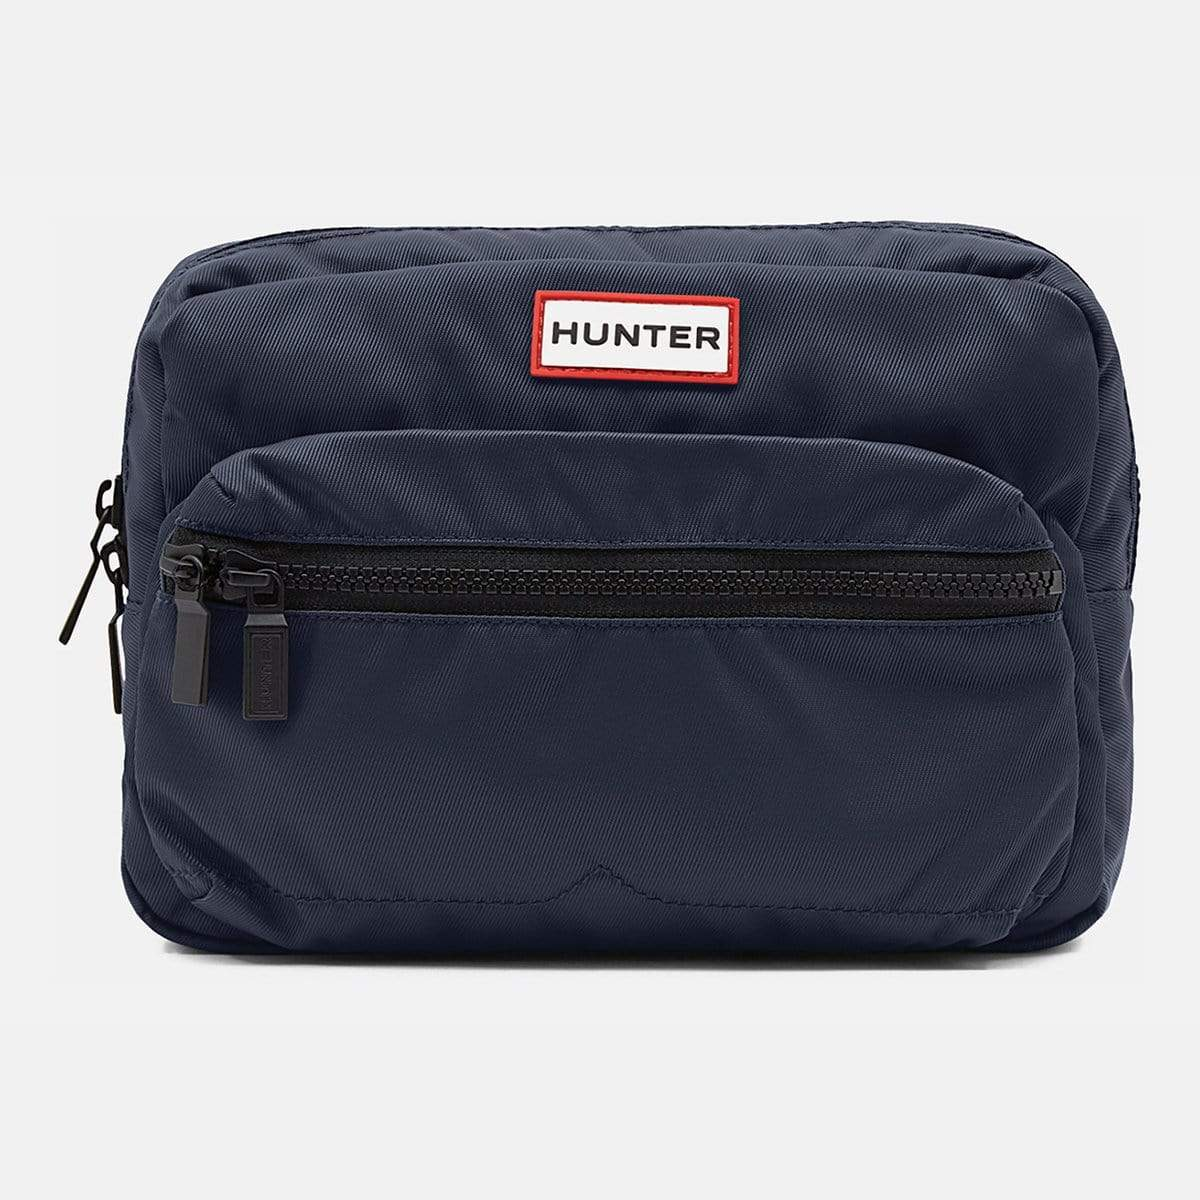 Hunter Accessories One Size / Blue Original Nylon Crossbody/Bumbag Navy